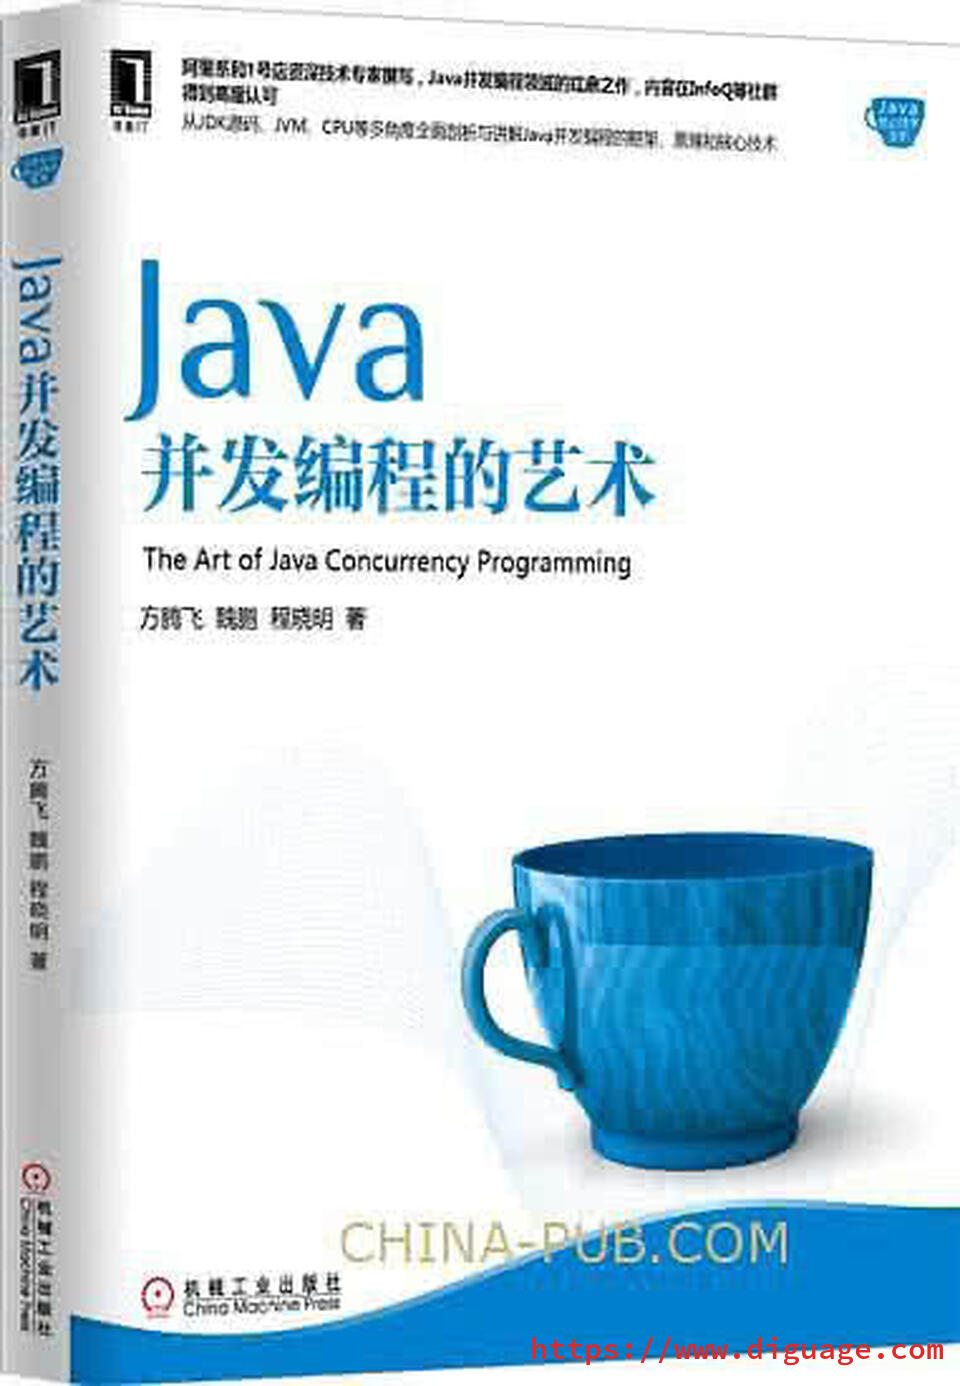 art of java concurrency programming